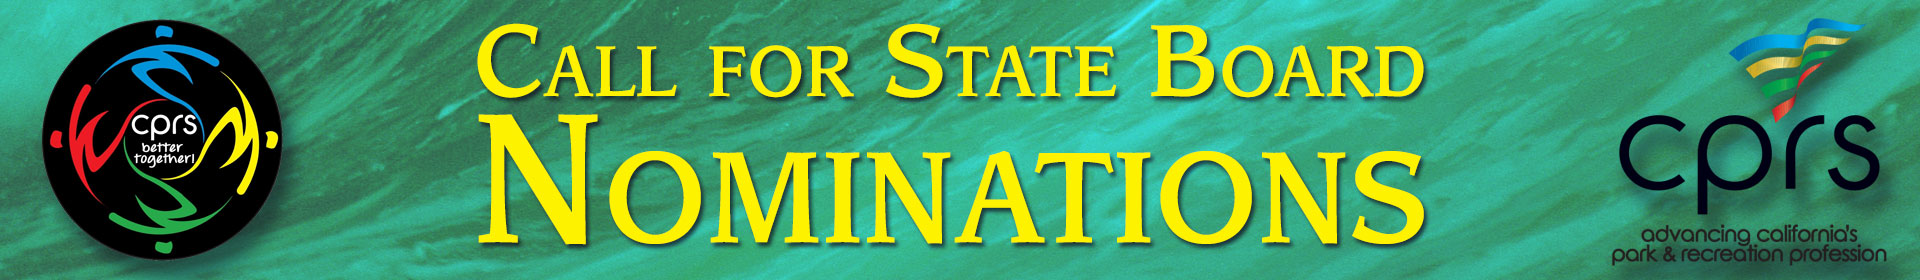 Call for State Board Nominations